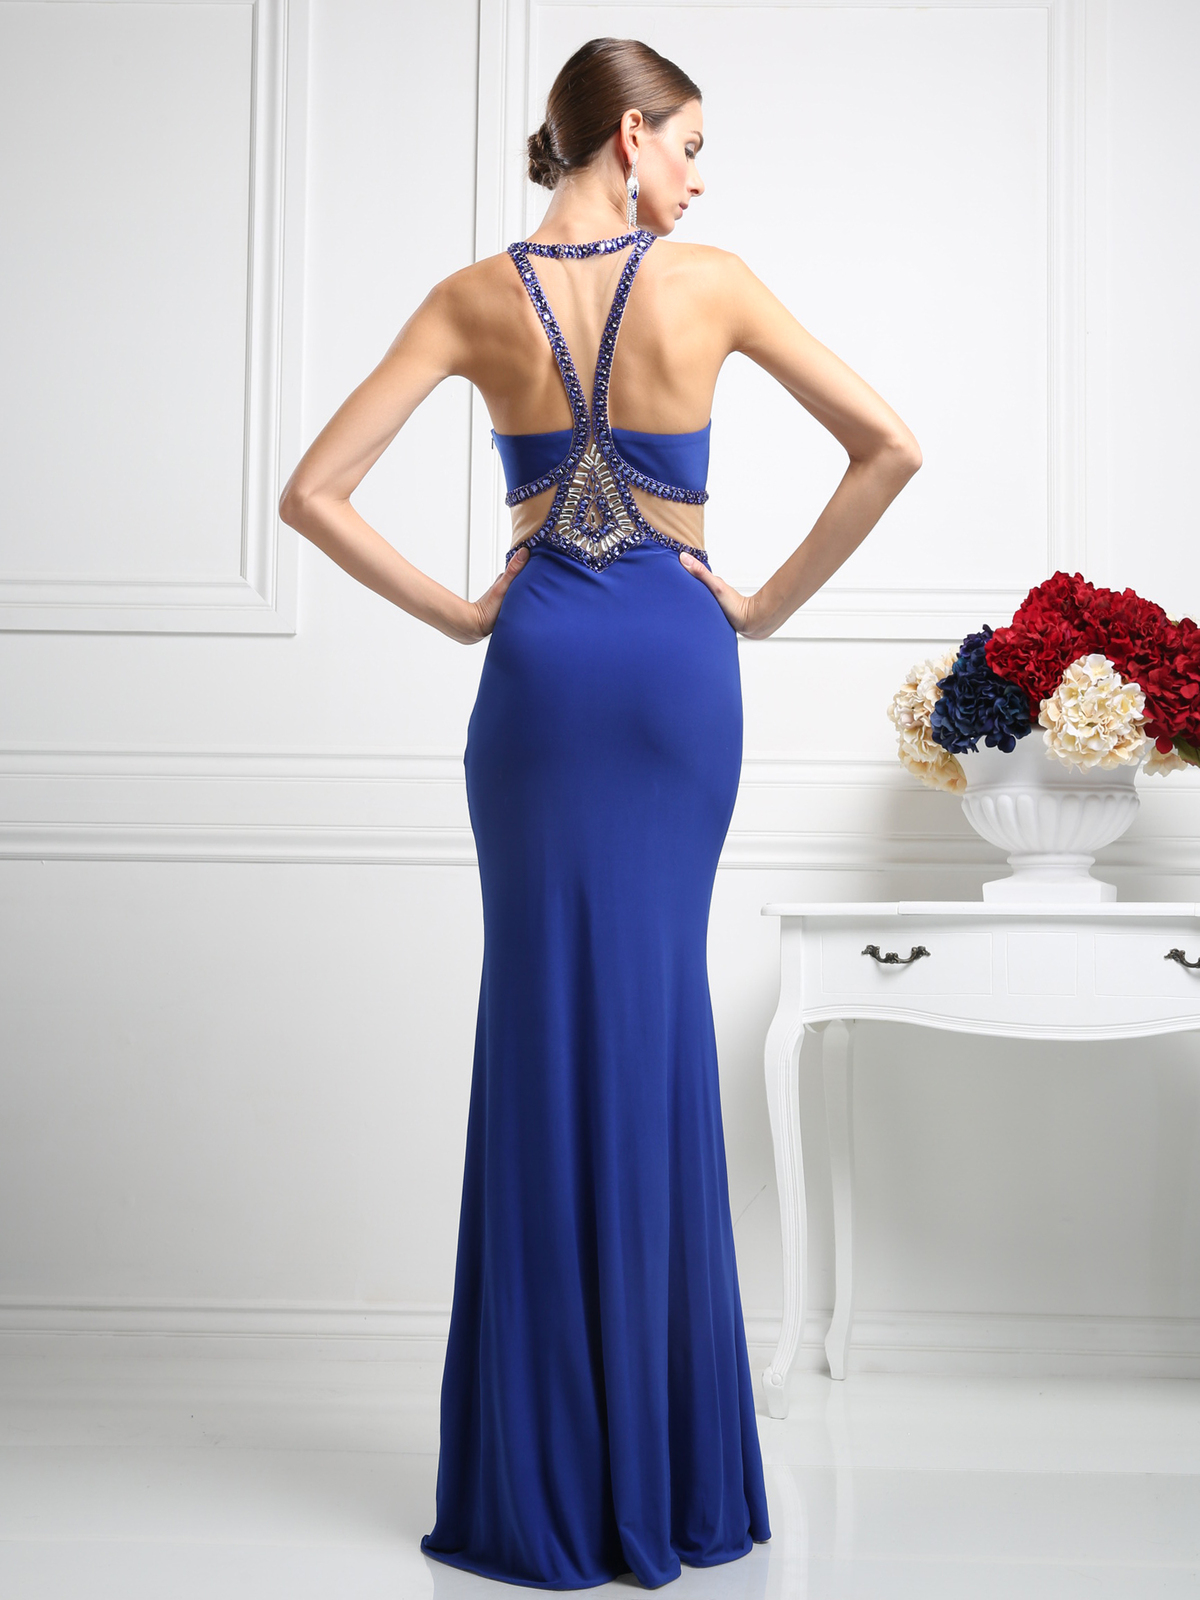 Halter Top Evening Dress With Sheer Cut Out Sung